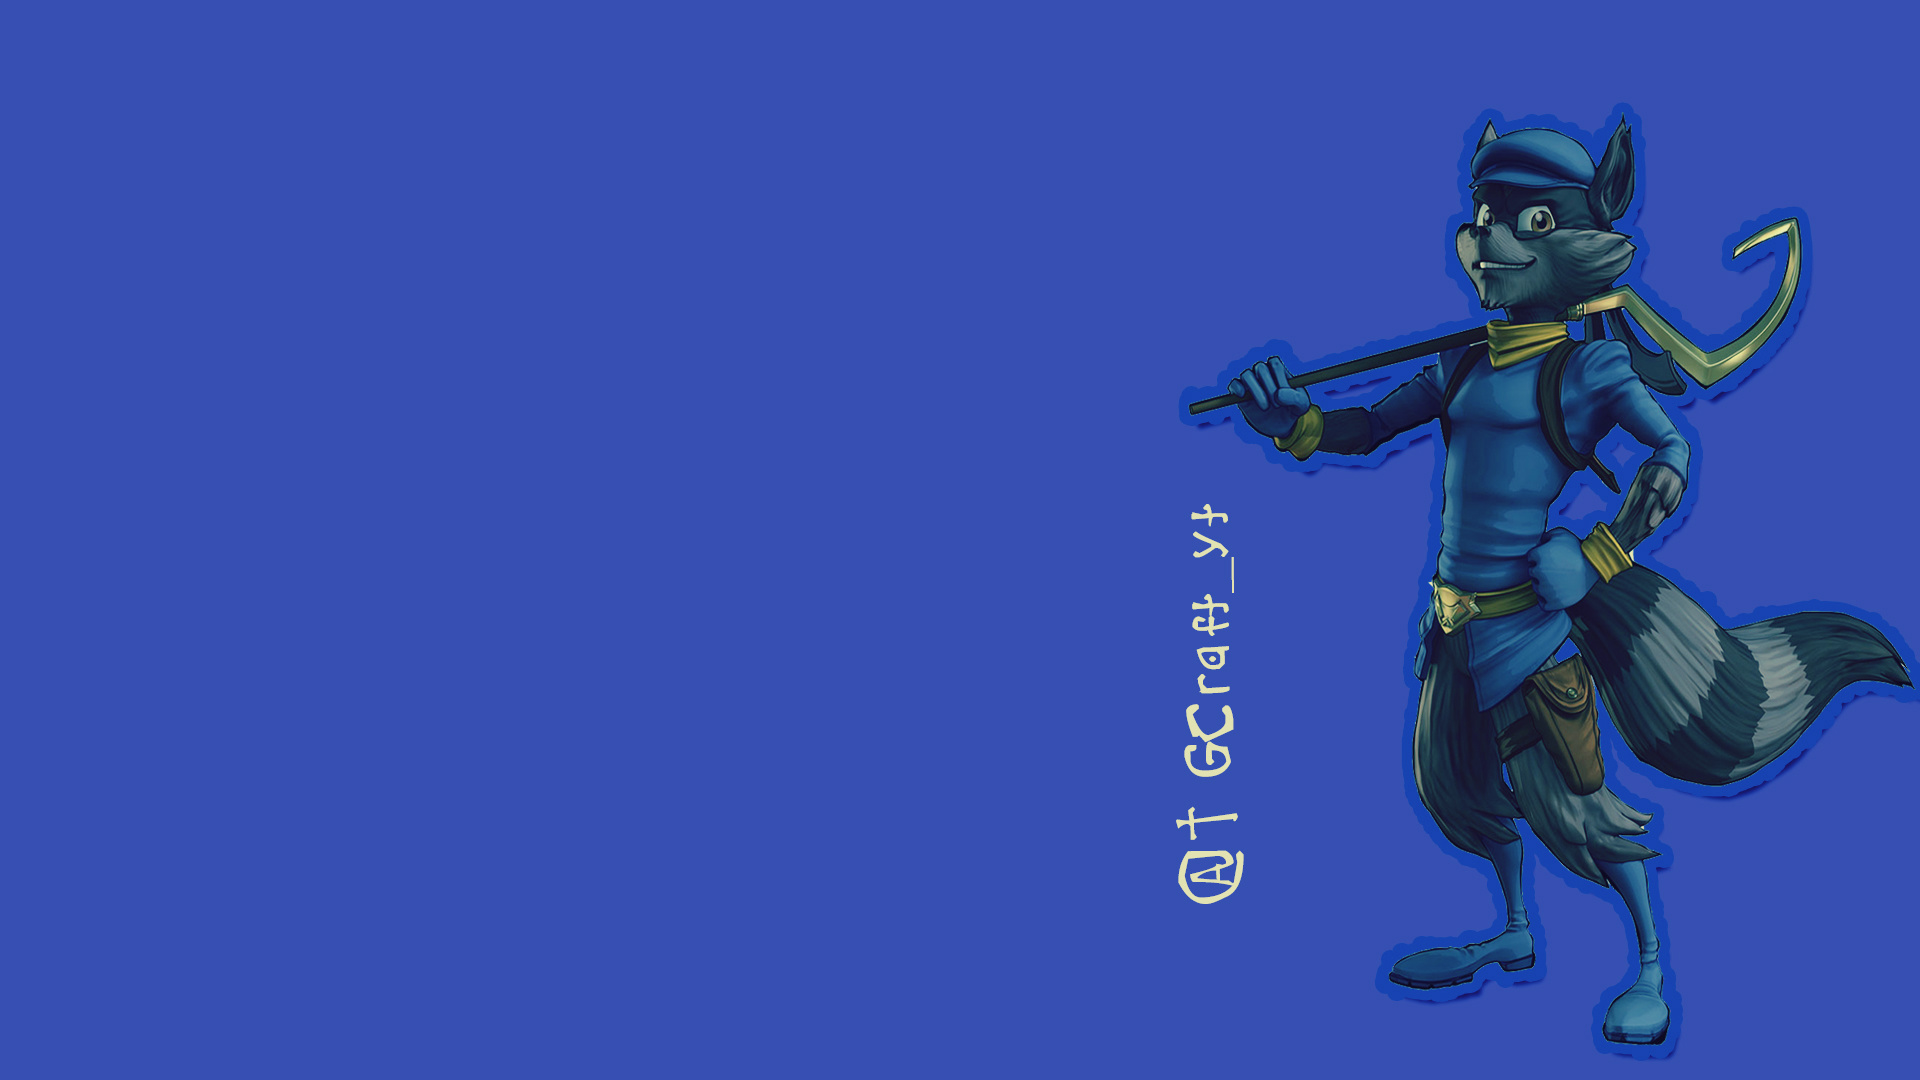 Sly Cooper Hd Wallpaper By Tgcraft On Deviantart